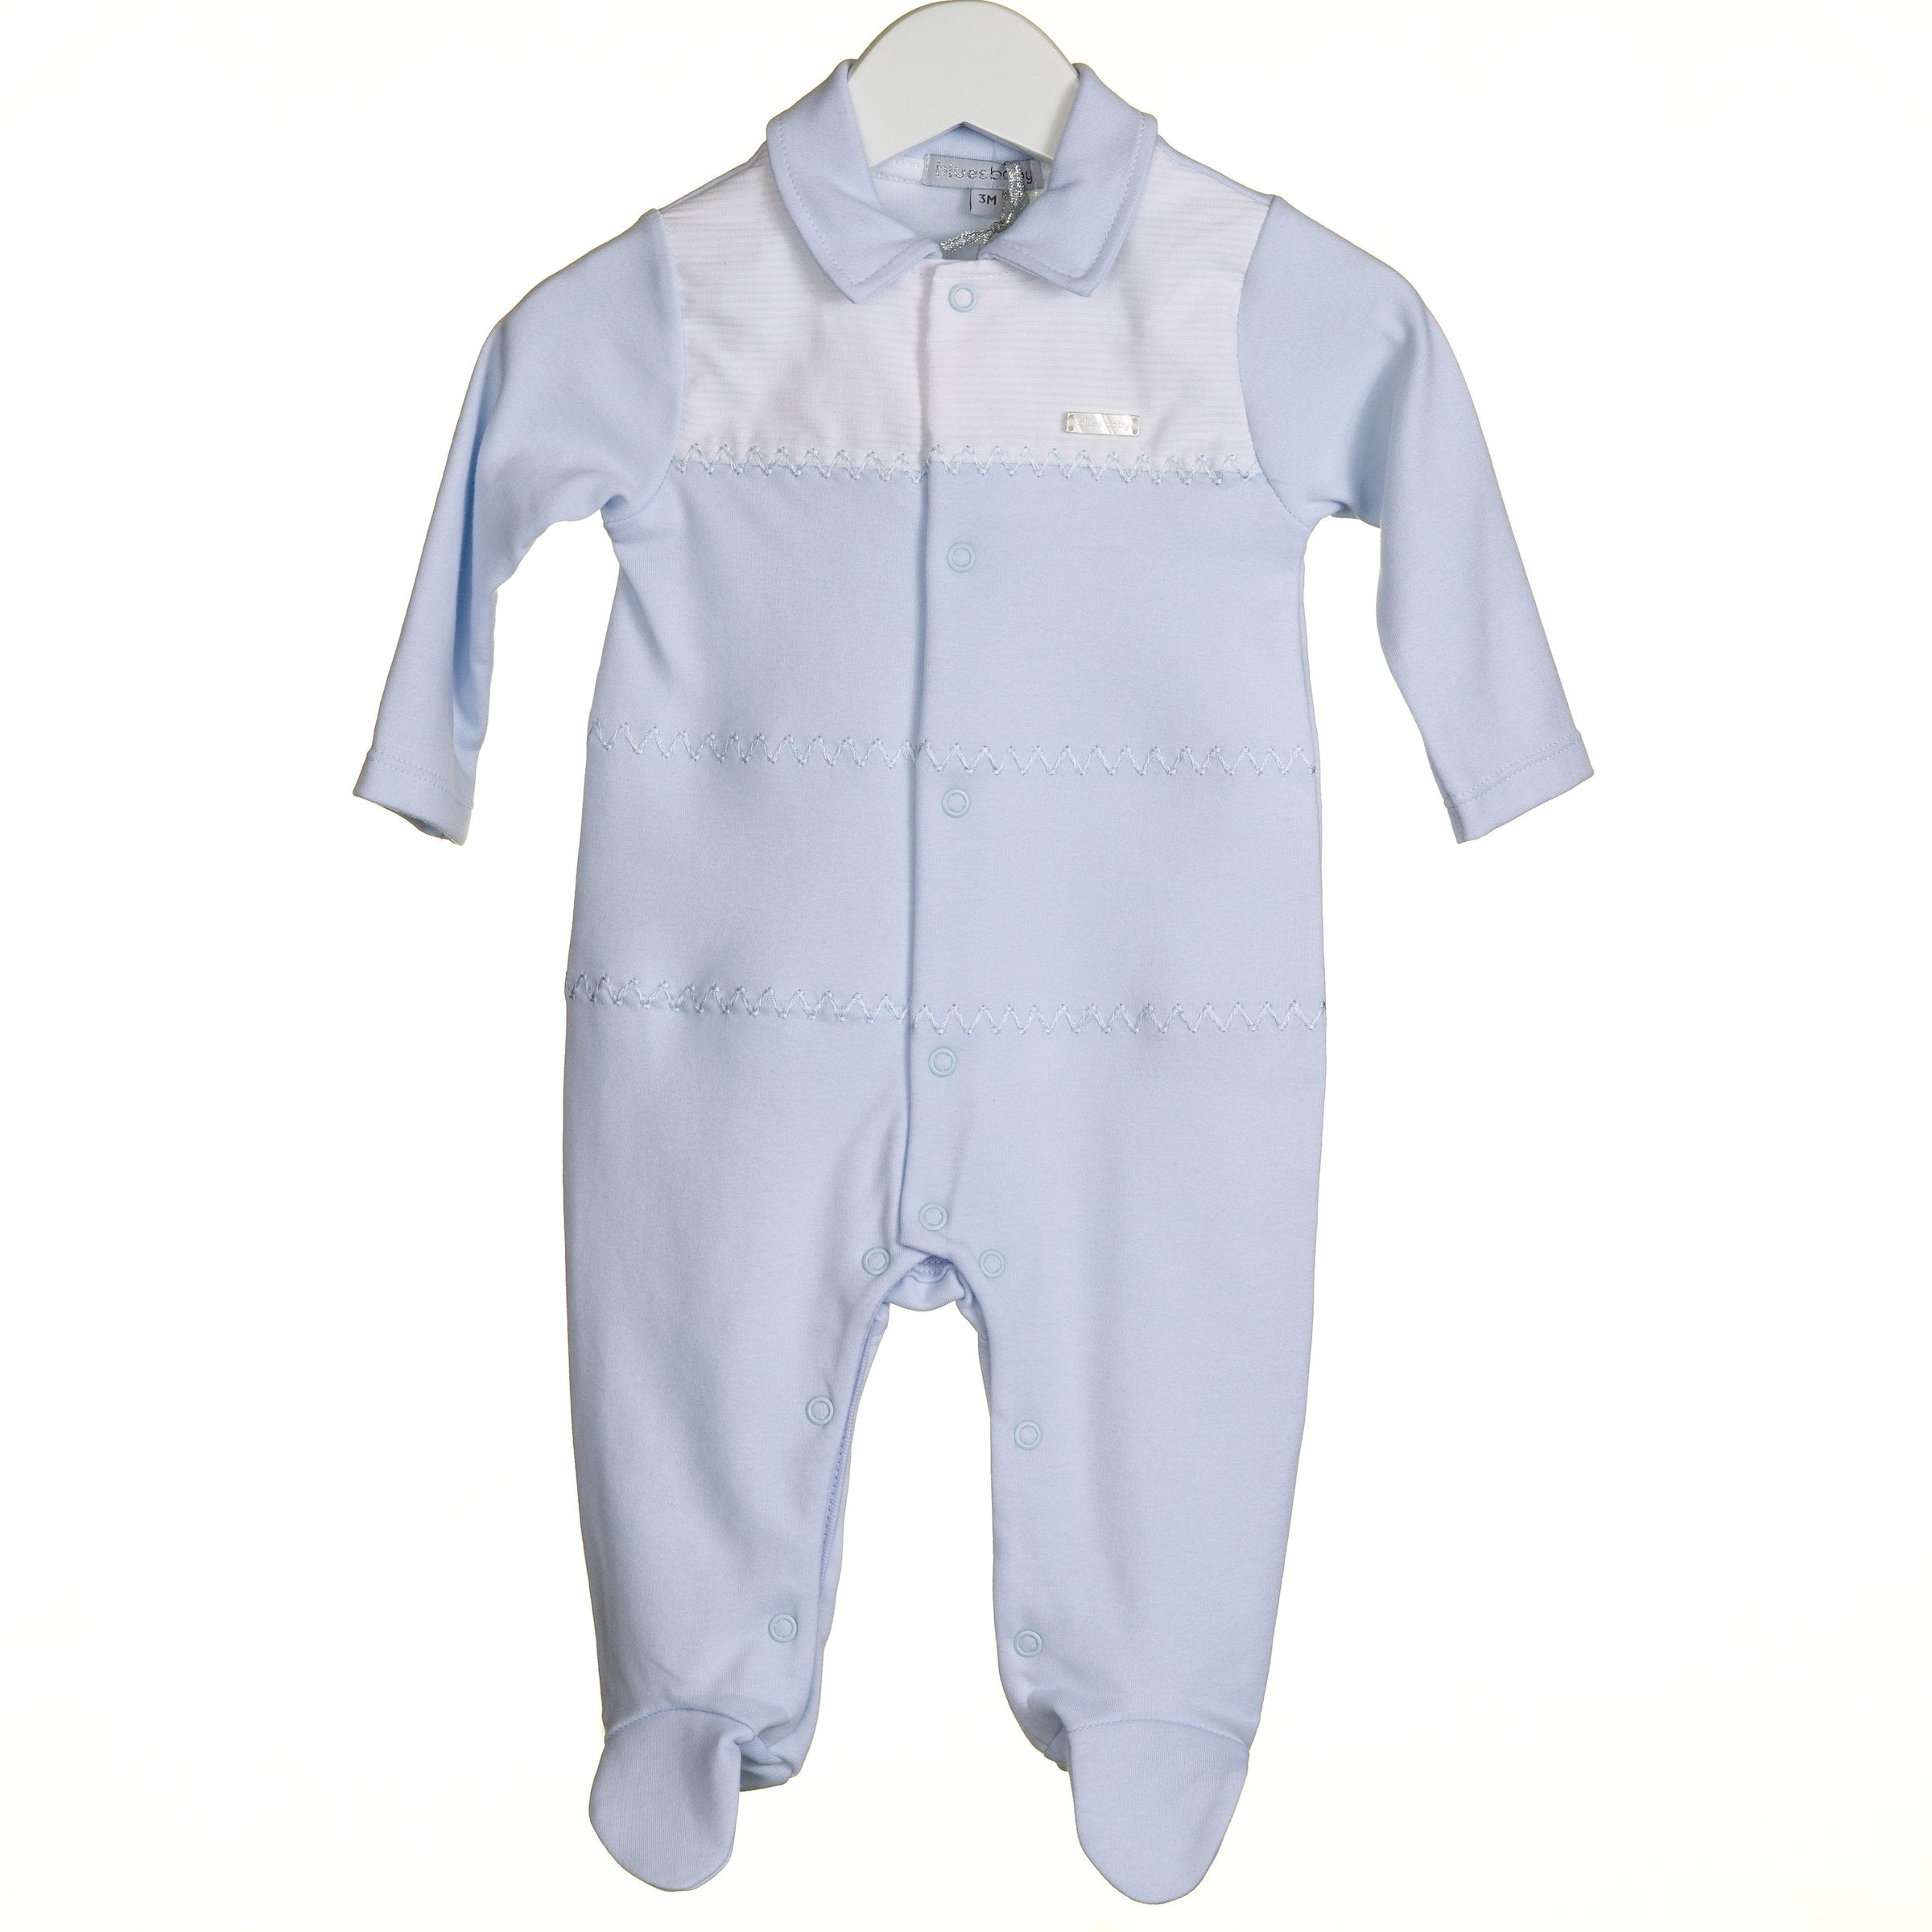 Blues Baby Classic Sky Blue Sleepsuit